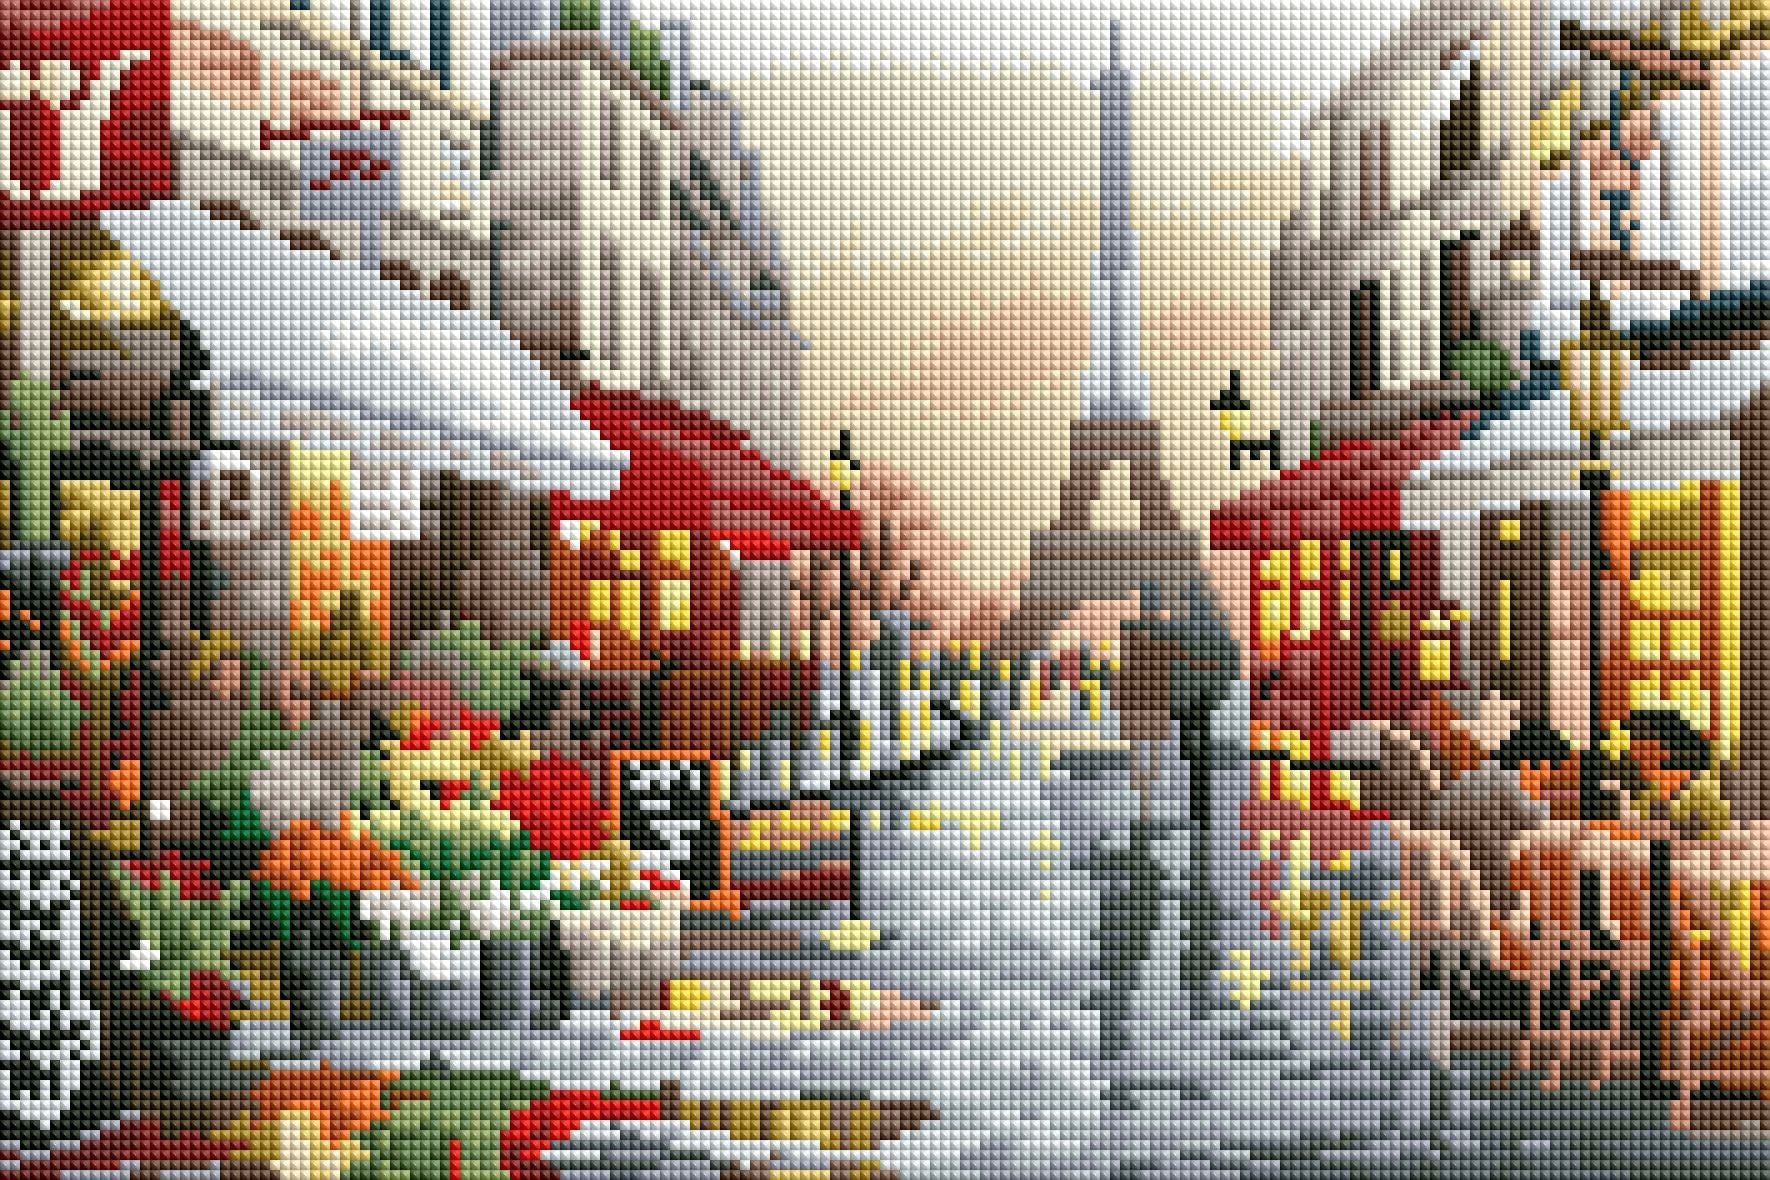 rainy day in paris diamond painting rendering preview by create love share